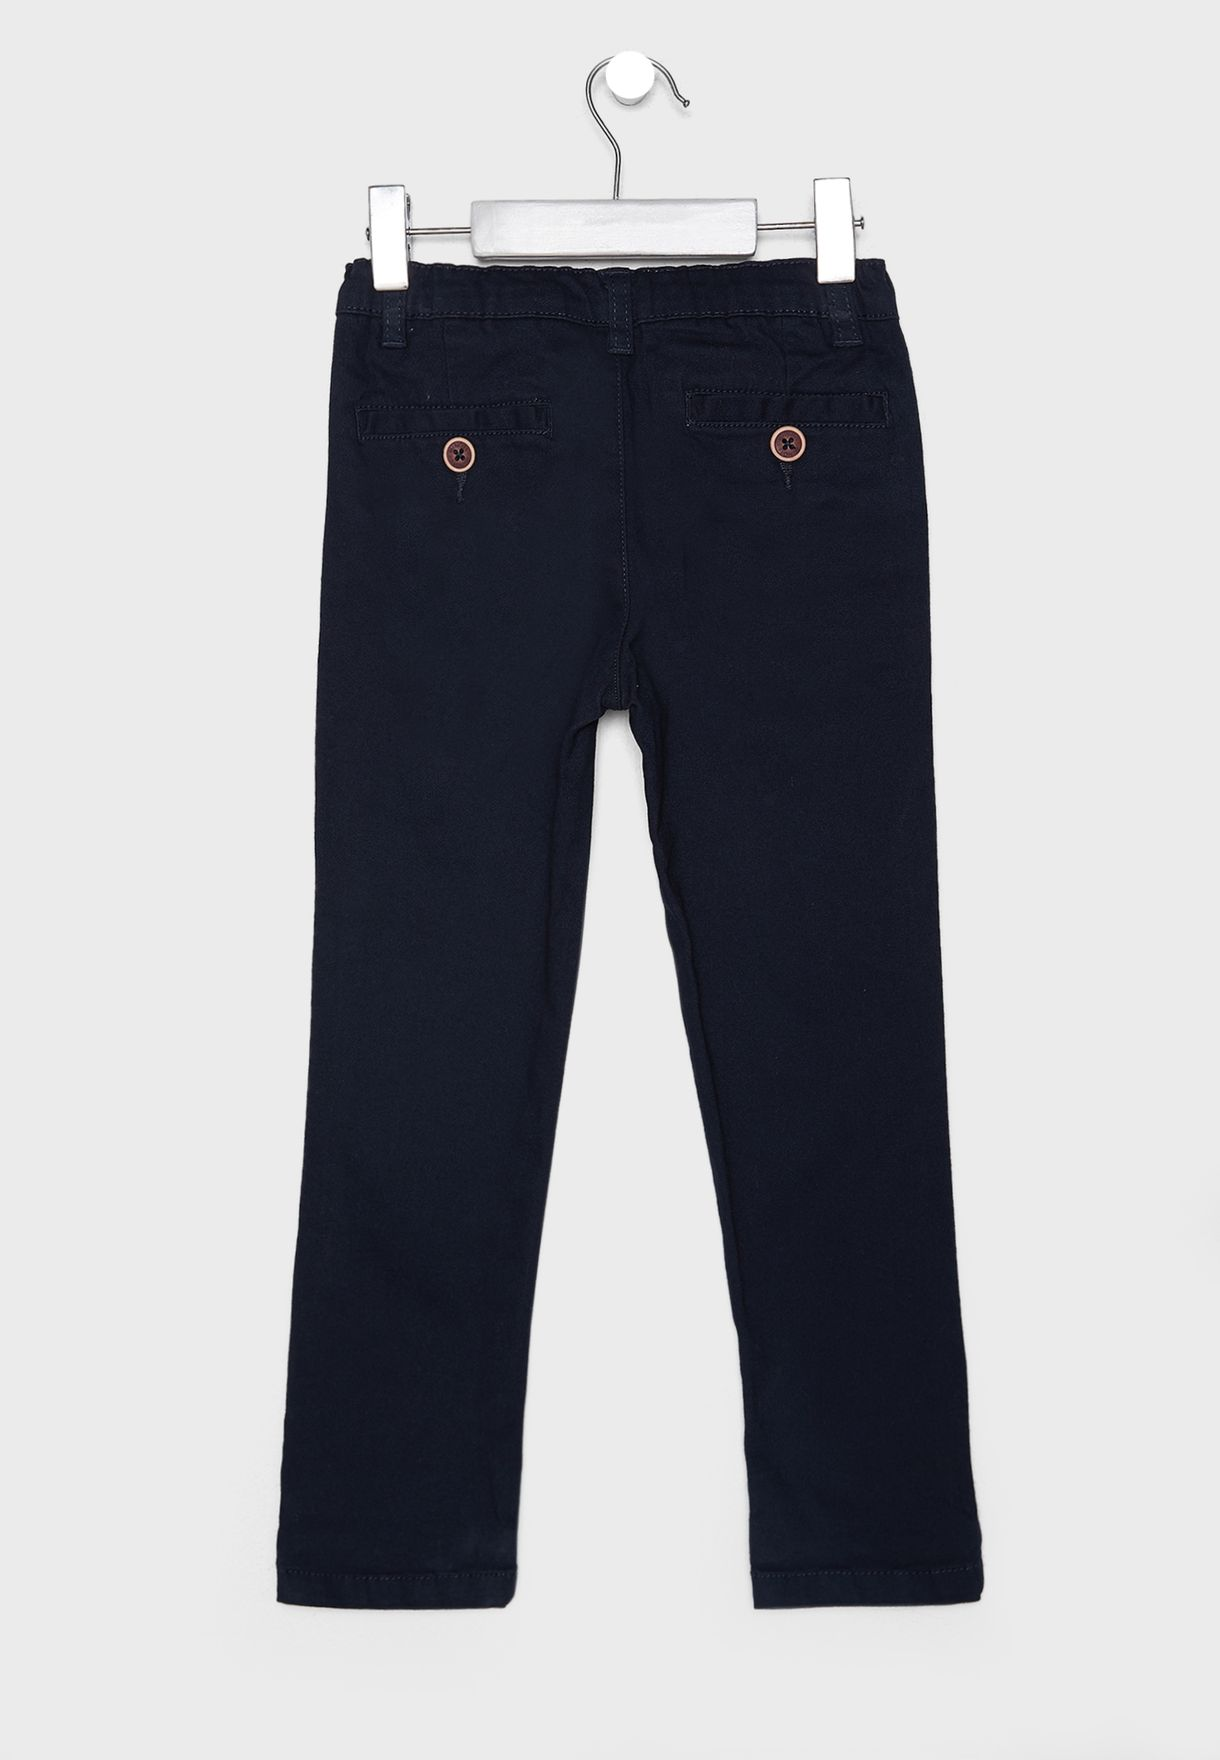 Kids Chino Pants